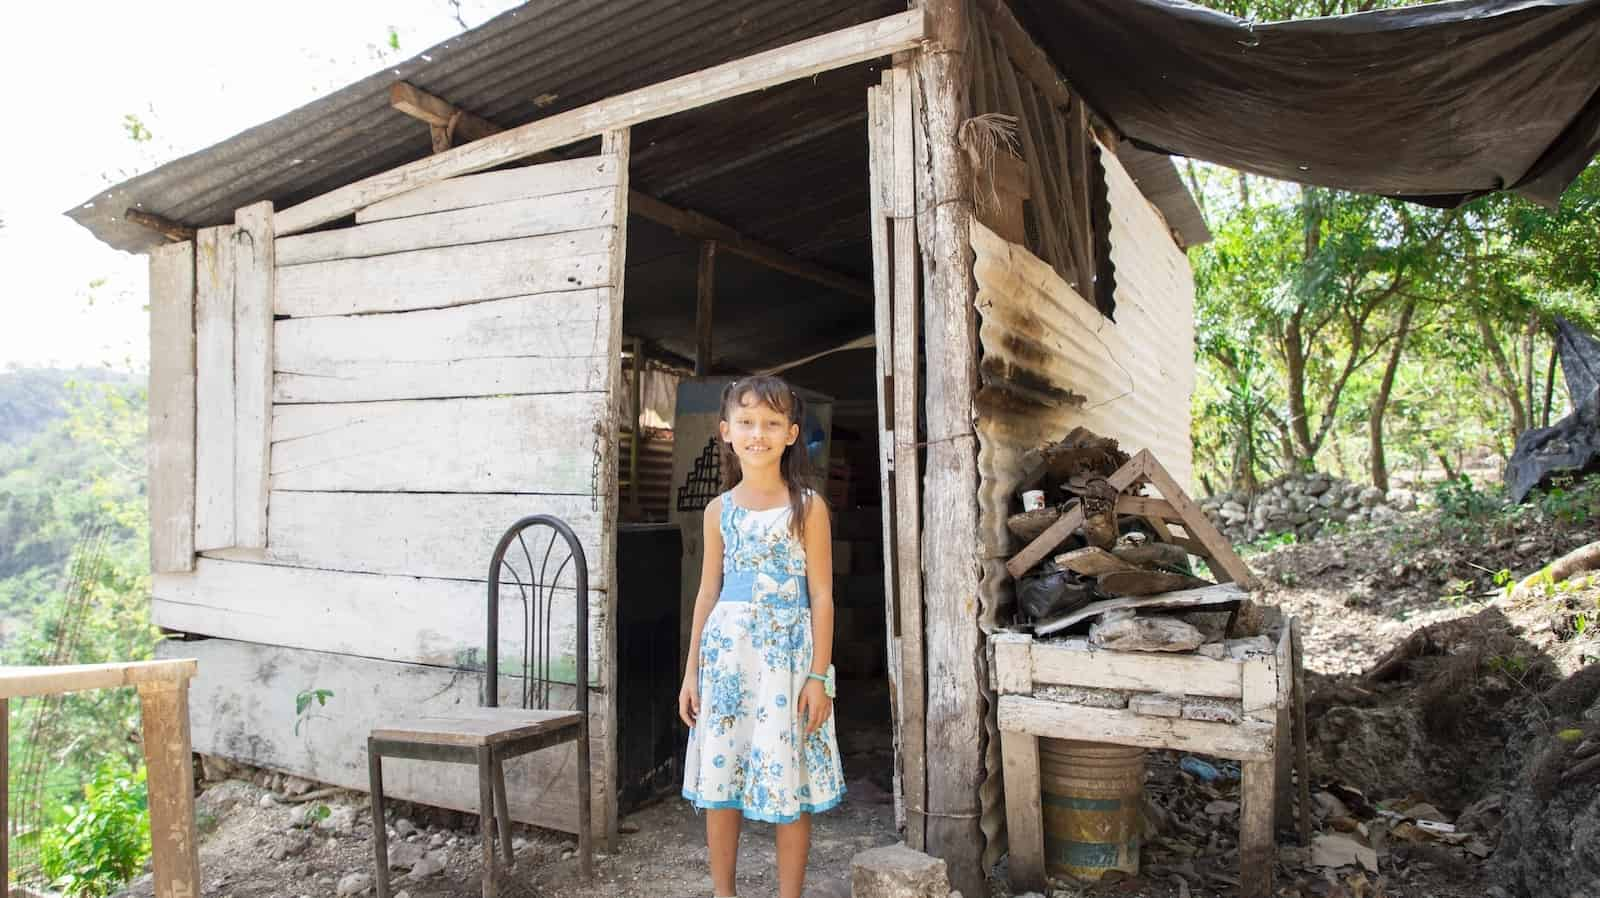 A girl in a white and blue dress stands in front of a small home in Central America made from wood and metal sheets. In the background are green hills and tress.